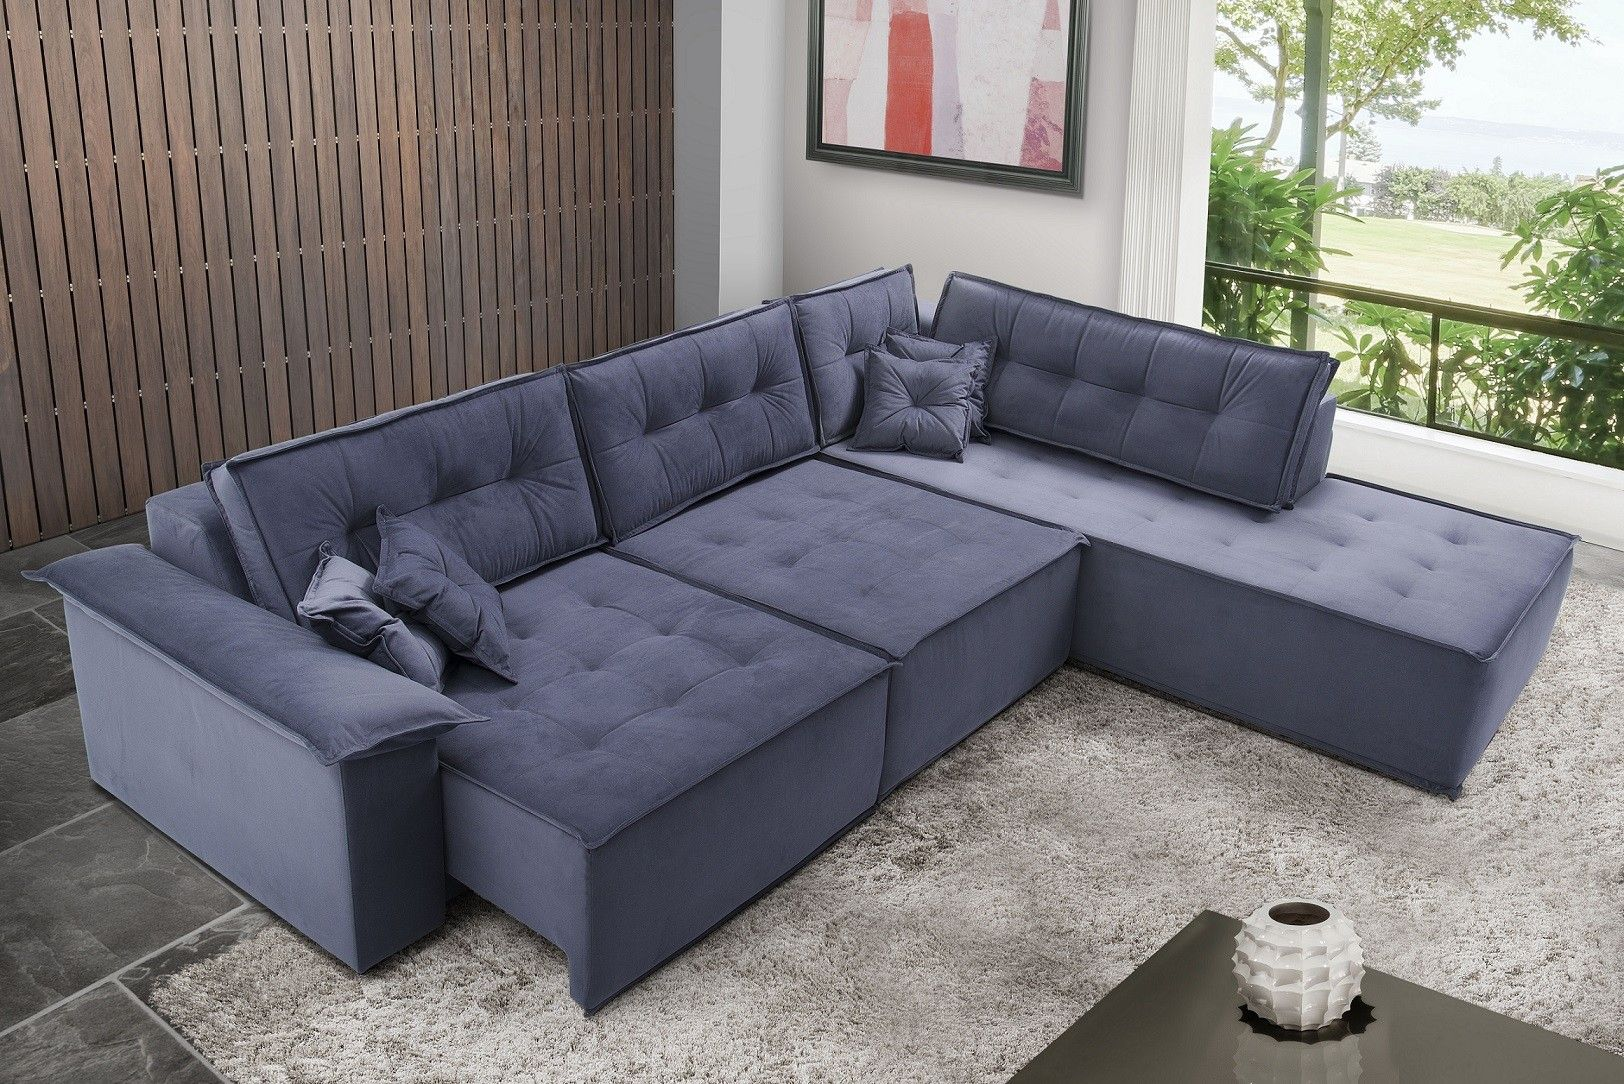 Sofa Retratil Sala Pequena Top Sofa Canto Retratil Preto For Small Home Interior Ideas With